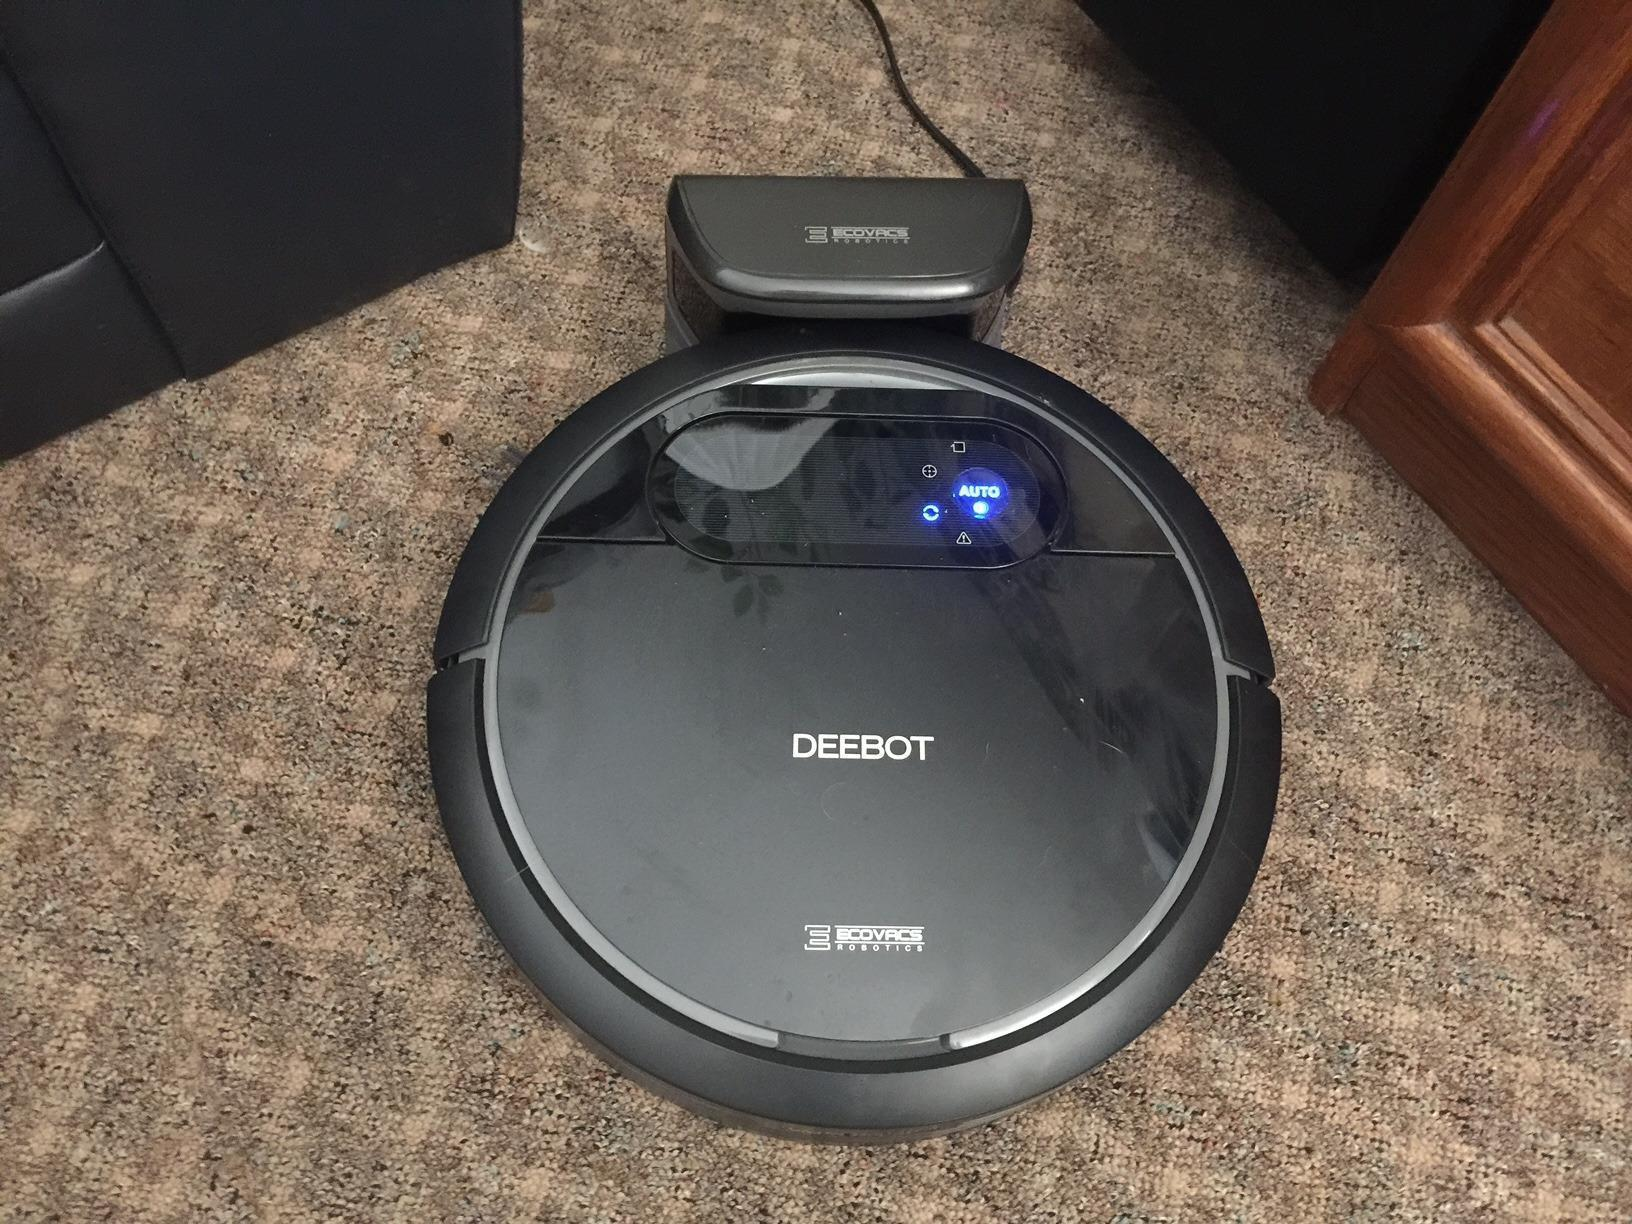 Ecovacs Deebot N78 Robot Vacuum Cleaner in the charging dock